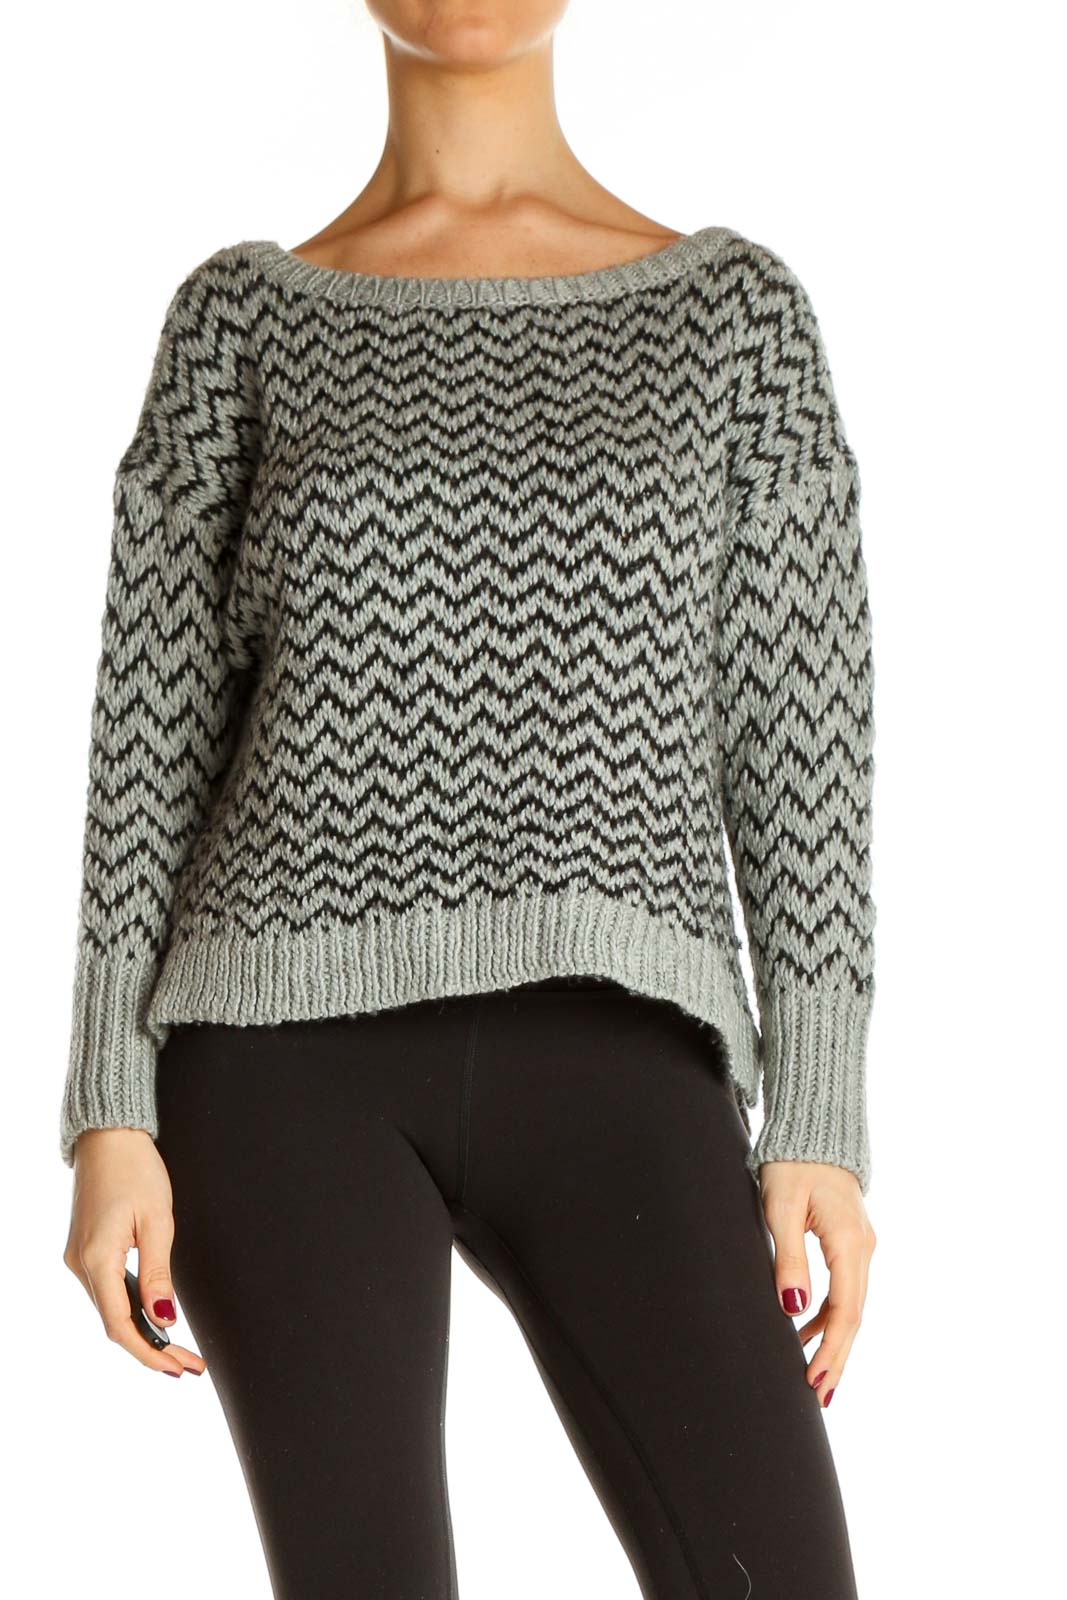 Gray Chevron All Day Wear Sweater Front